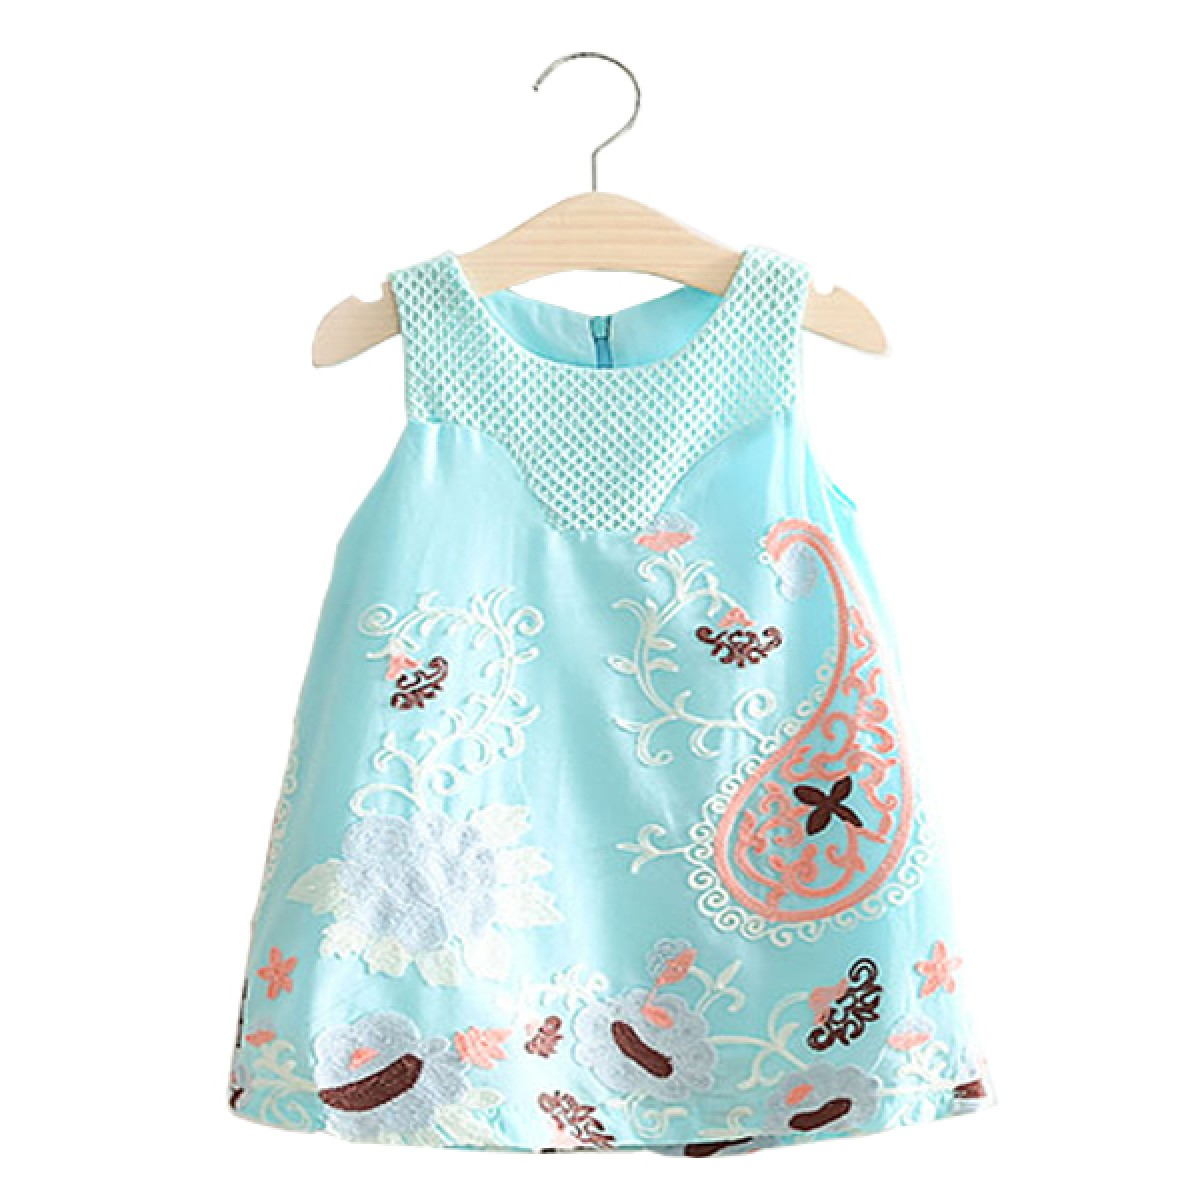 16b9d76f8eb6 ... blue embroidered summer dress. Brand  e2woo. Product Code   0275ALFAPF000275 Availability  In Stock